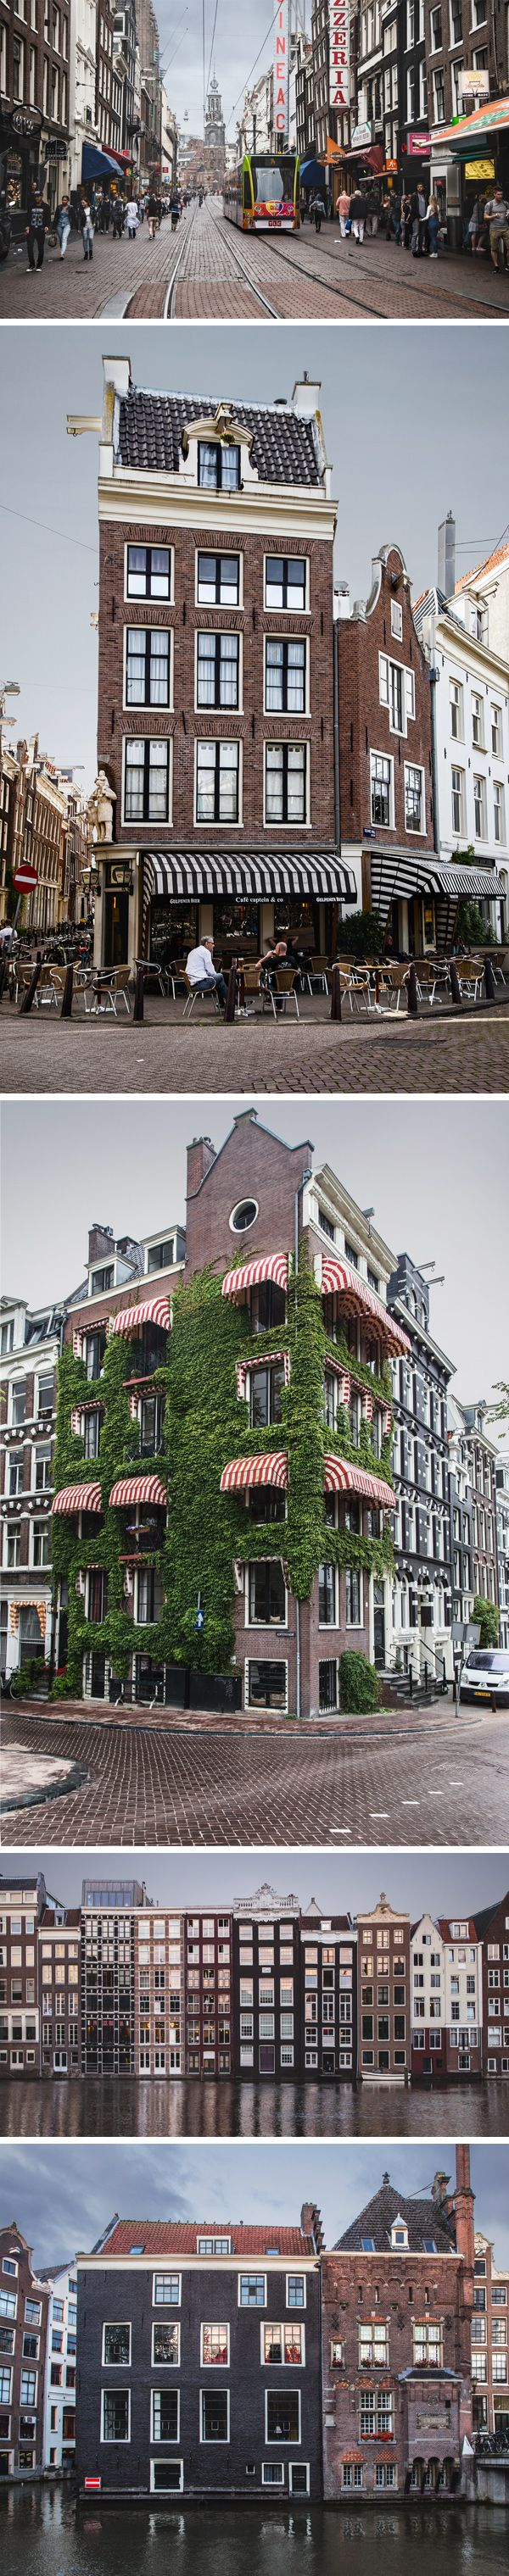 Today's special is a new set of photos I took while traveling, this one features 5 urban images from Amsterdam...